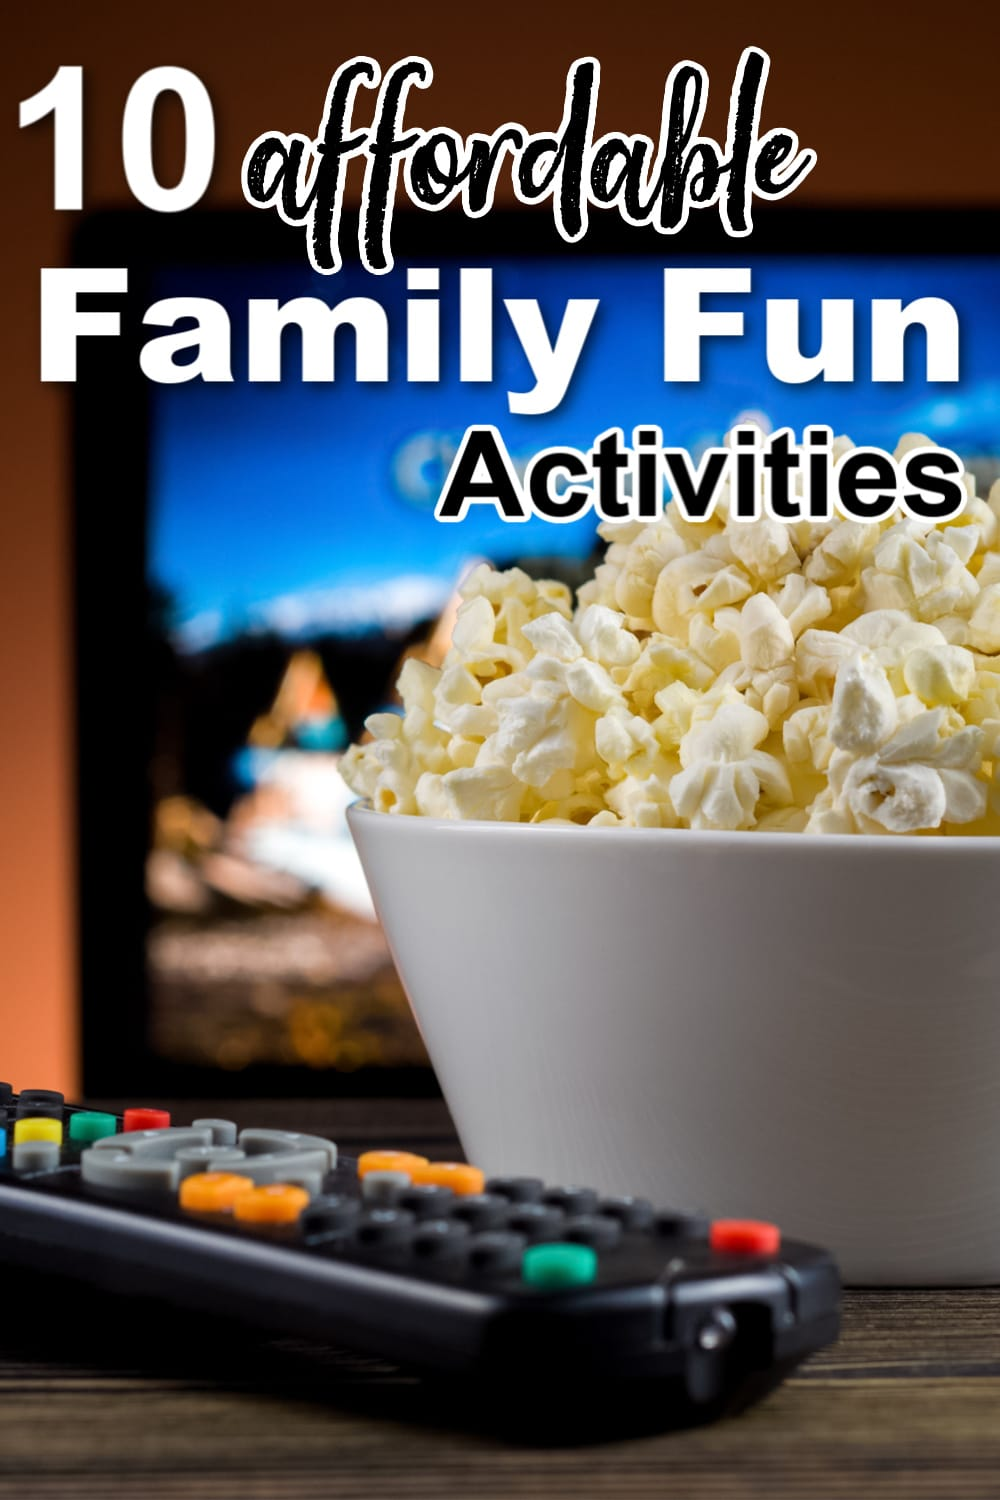 a white bowl of popcorn next to a tv remote with a tv in the background with title text reading 10 affordable Family Fun Activities